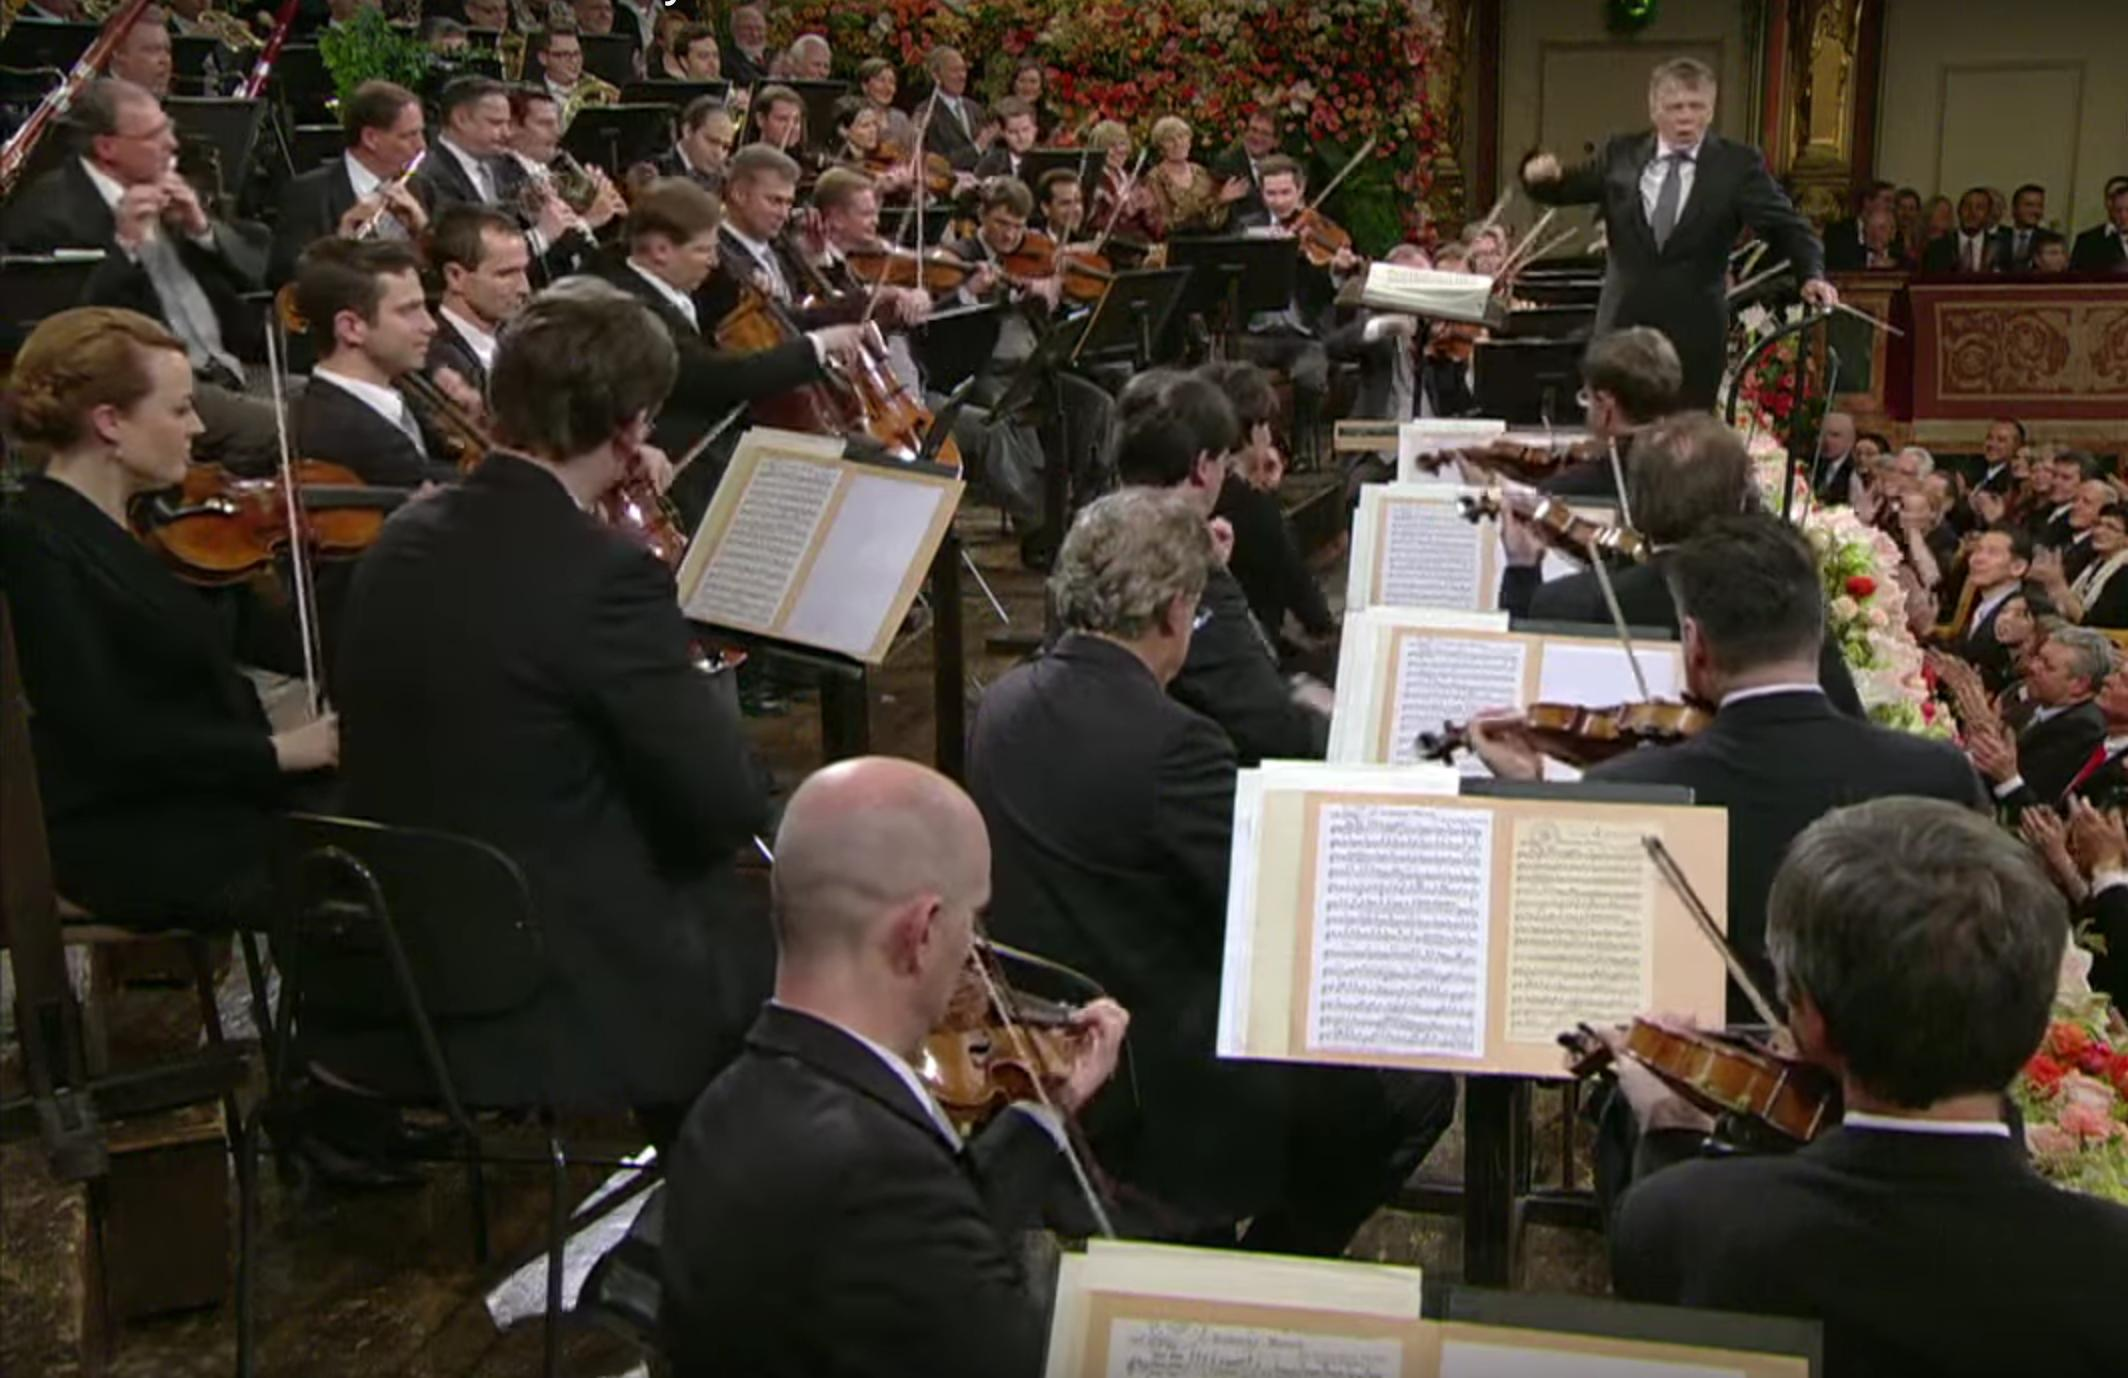 Vienna New Year's Eve Concert - Mariss Jansons